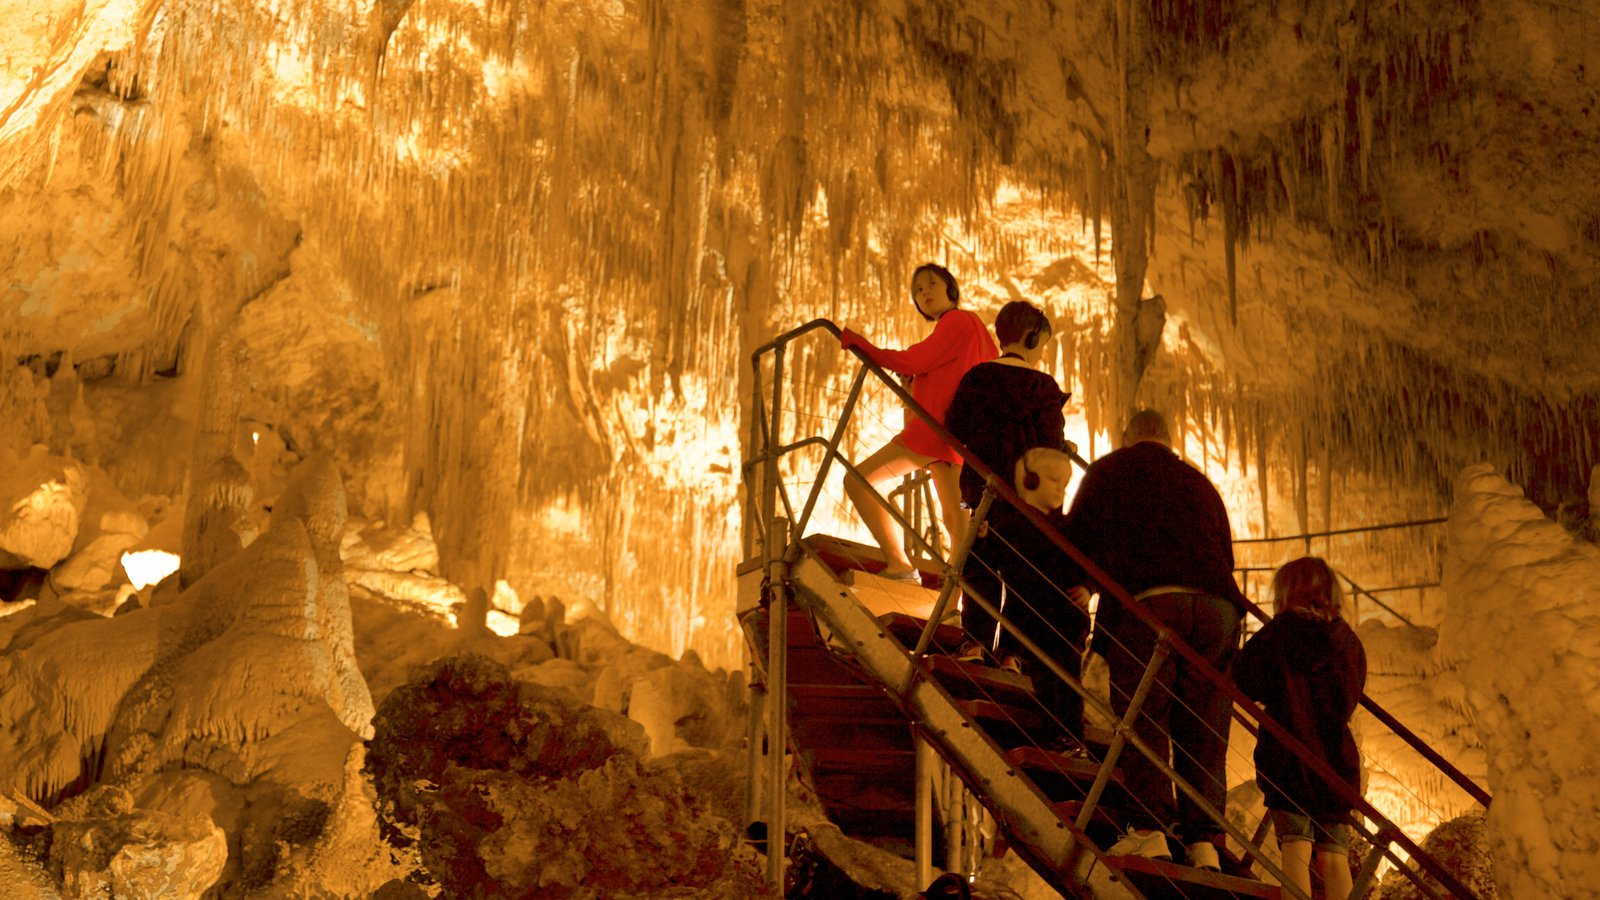 Mammoth Cave featuring caves as well as an individual male